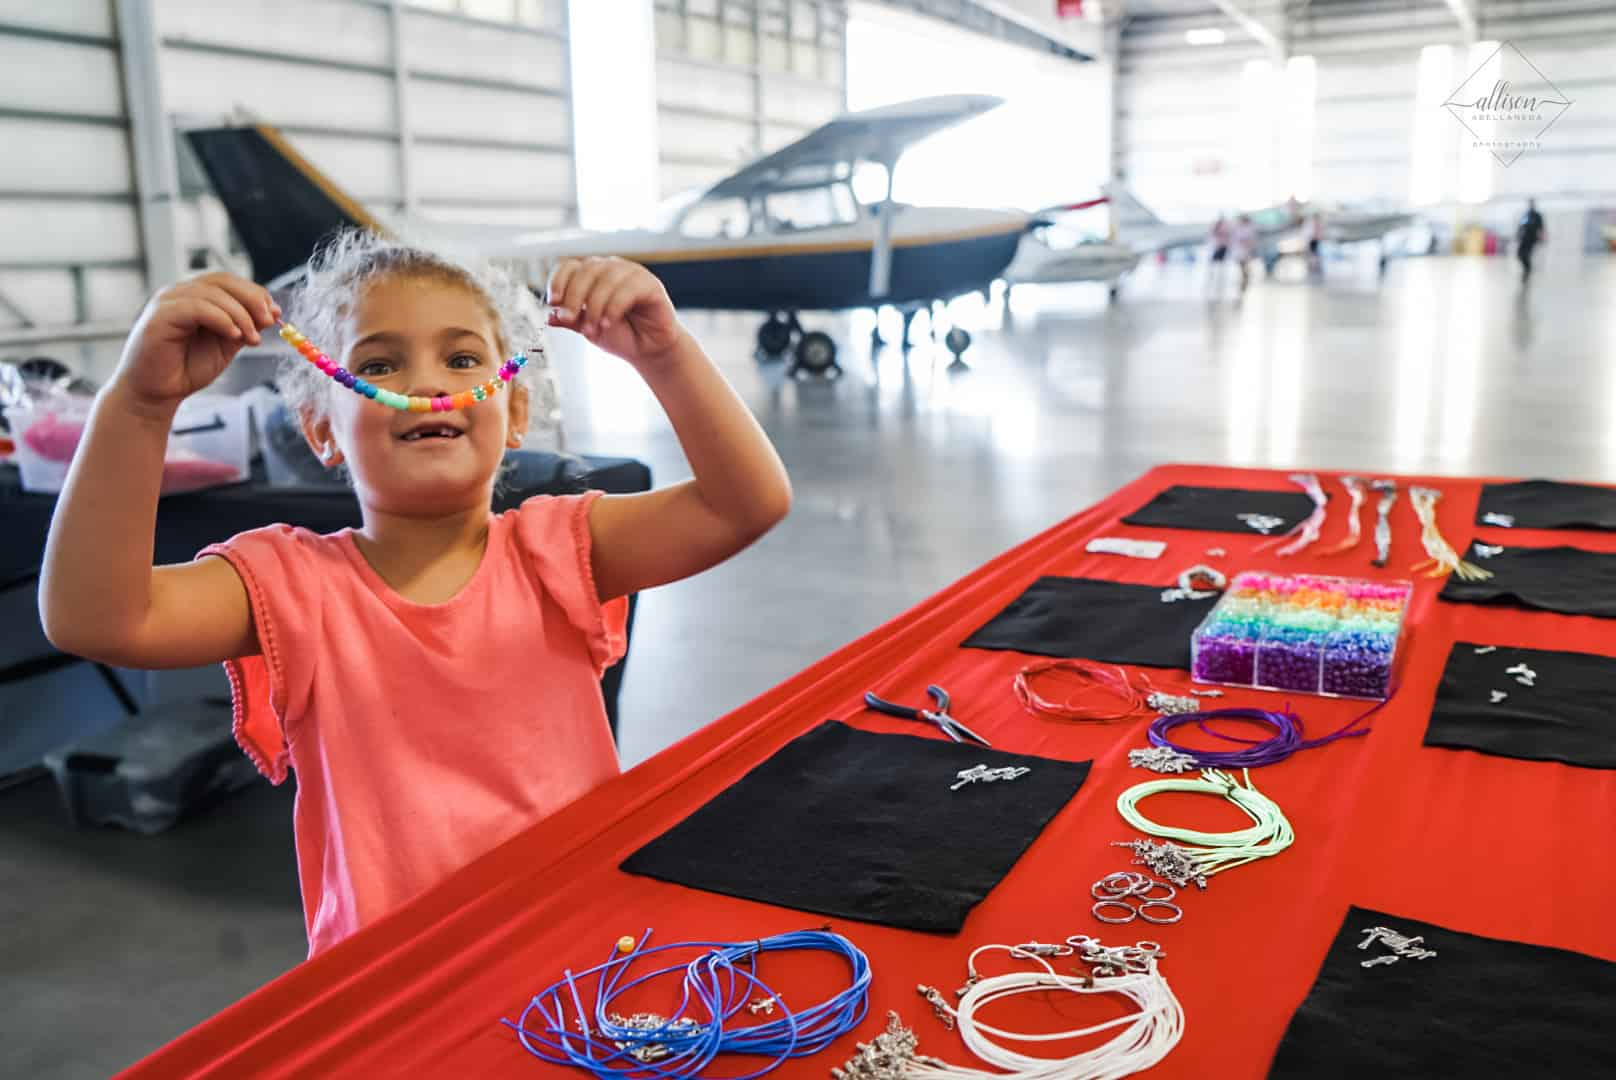 Sheltair Tampa Hosts Girls in Aviation Day